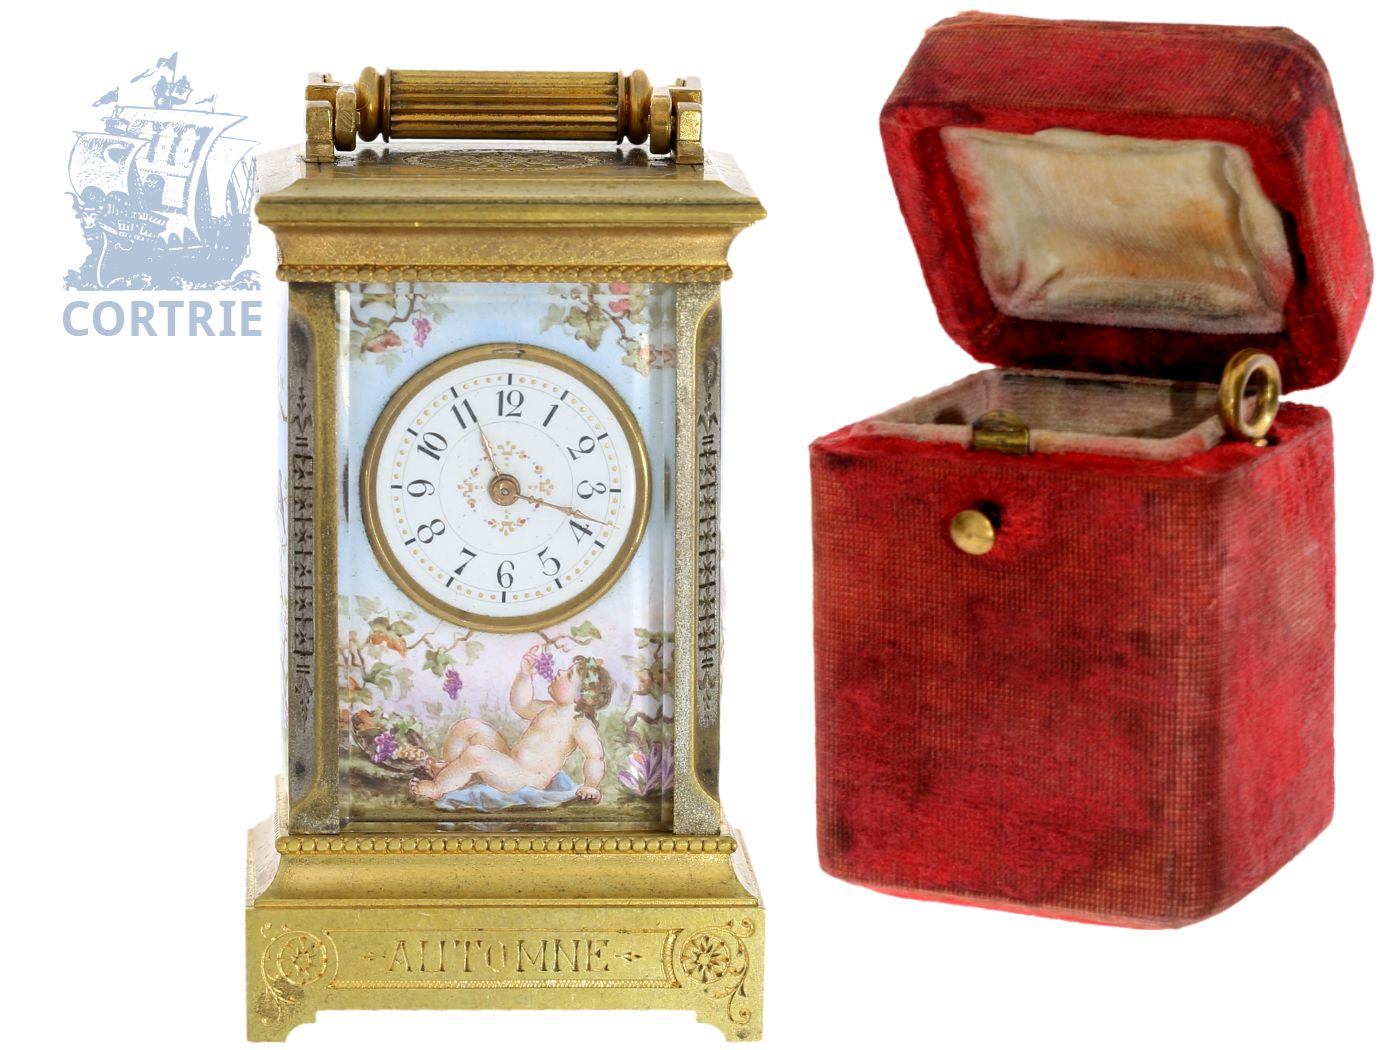 Travel clock: exquisite and very rare French miniature travel clock with complex enamel painting and original box, France ca. 1880-